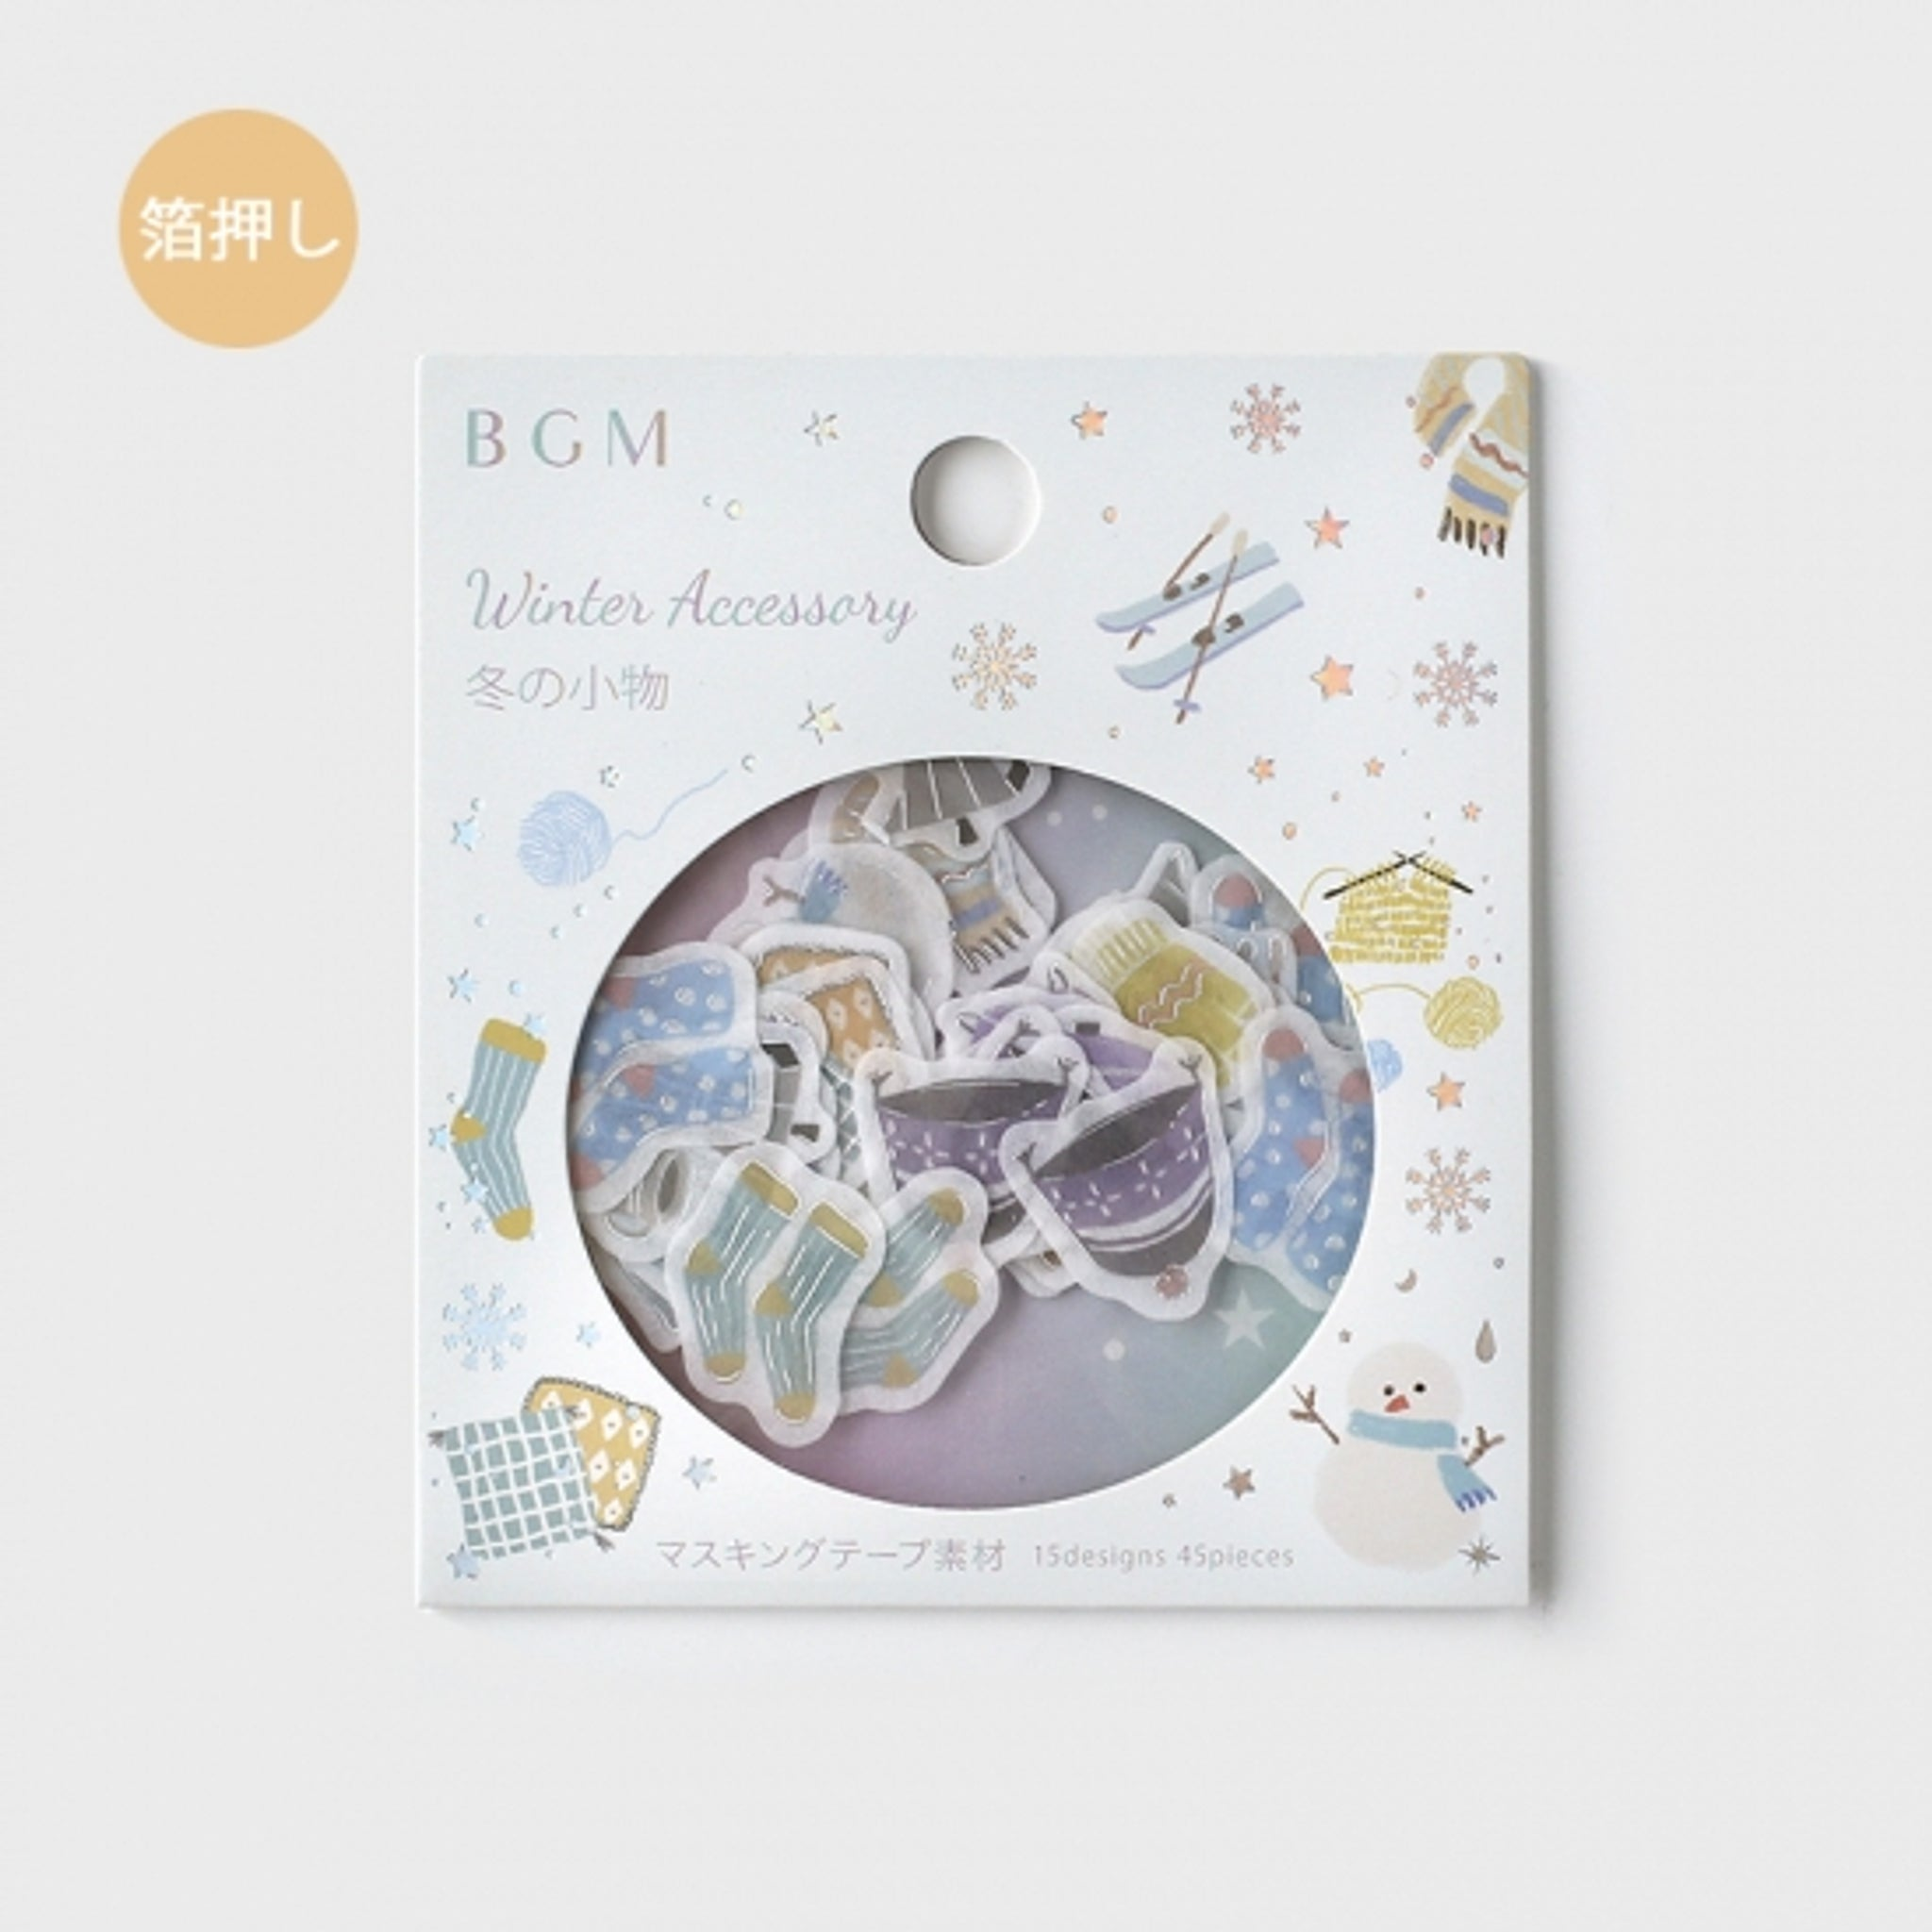 BGM Flakes Seal Winter Accessories